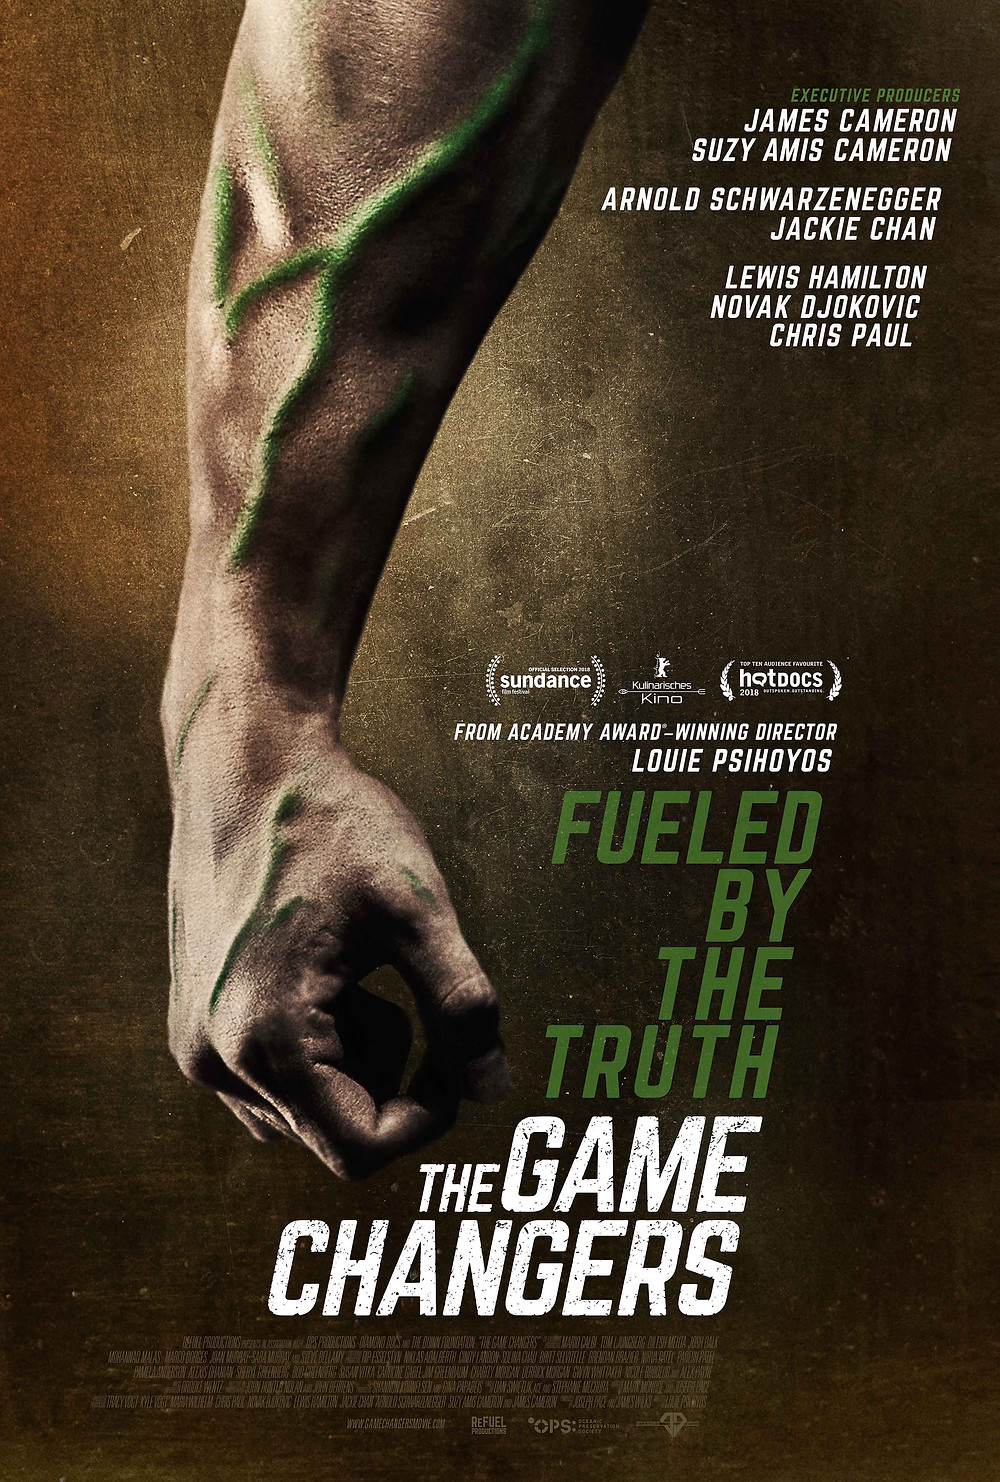 The Game Changers - James Cameron, Suzy Amis Cameron, Arnold Schwarzenegger, Jackie Chan, Lewis Hamilton, Nocak Djokovic, Chris Paul